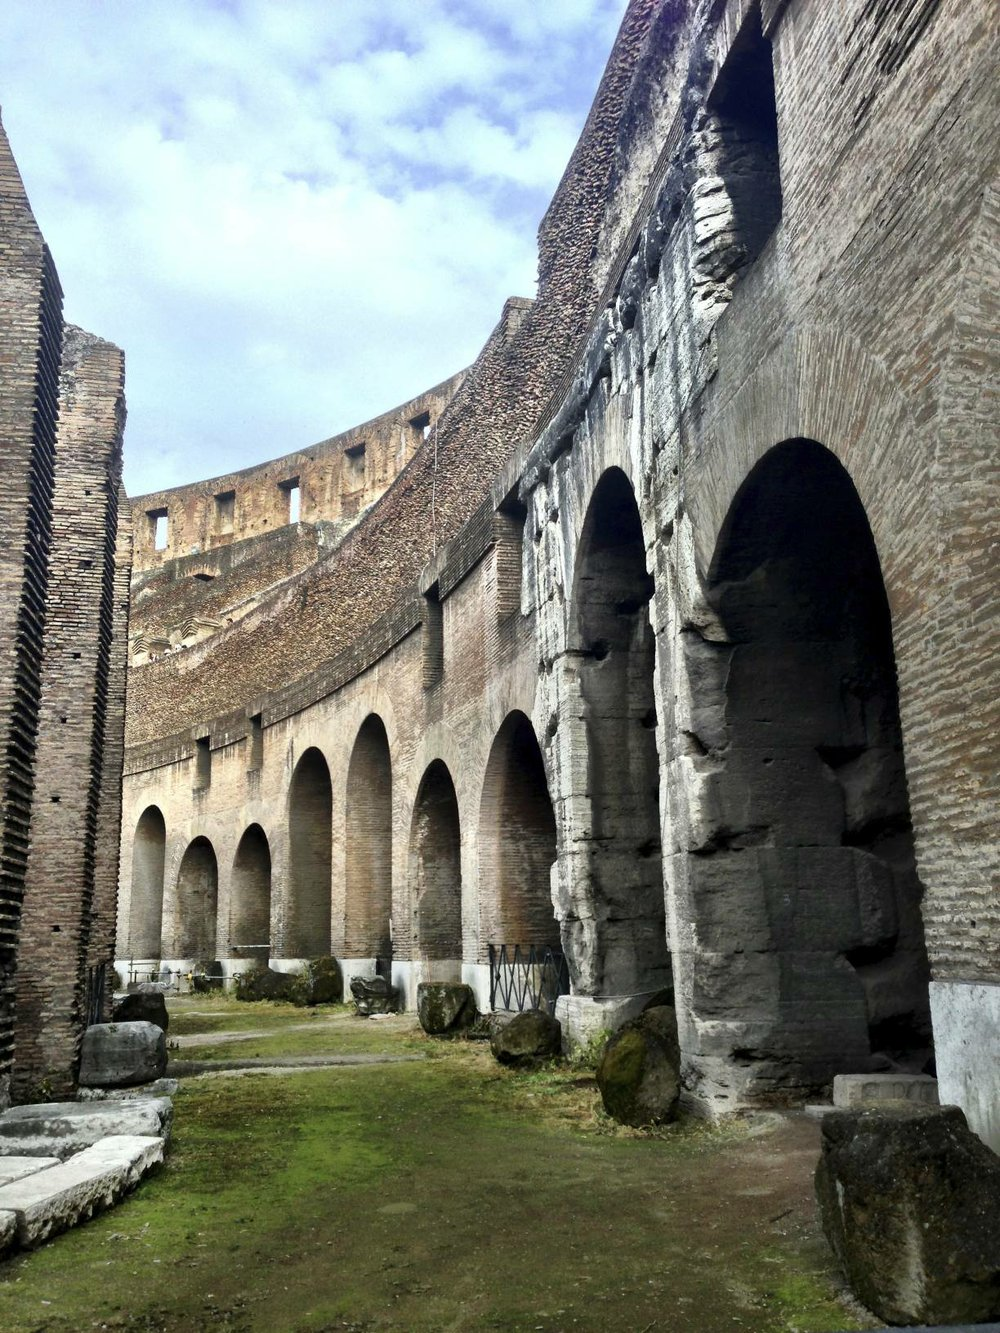 Wandering Rome's Colosseum.